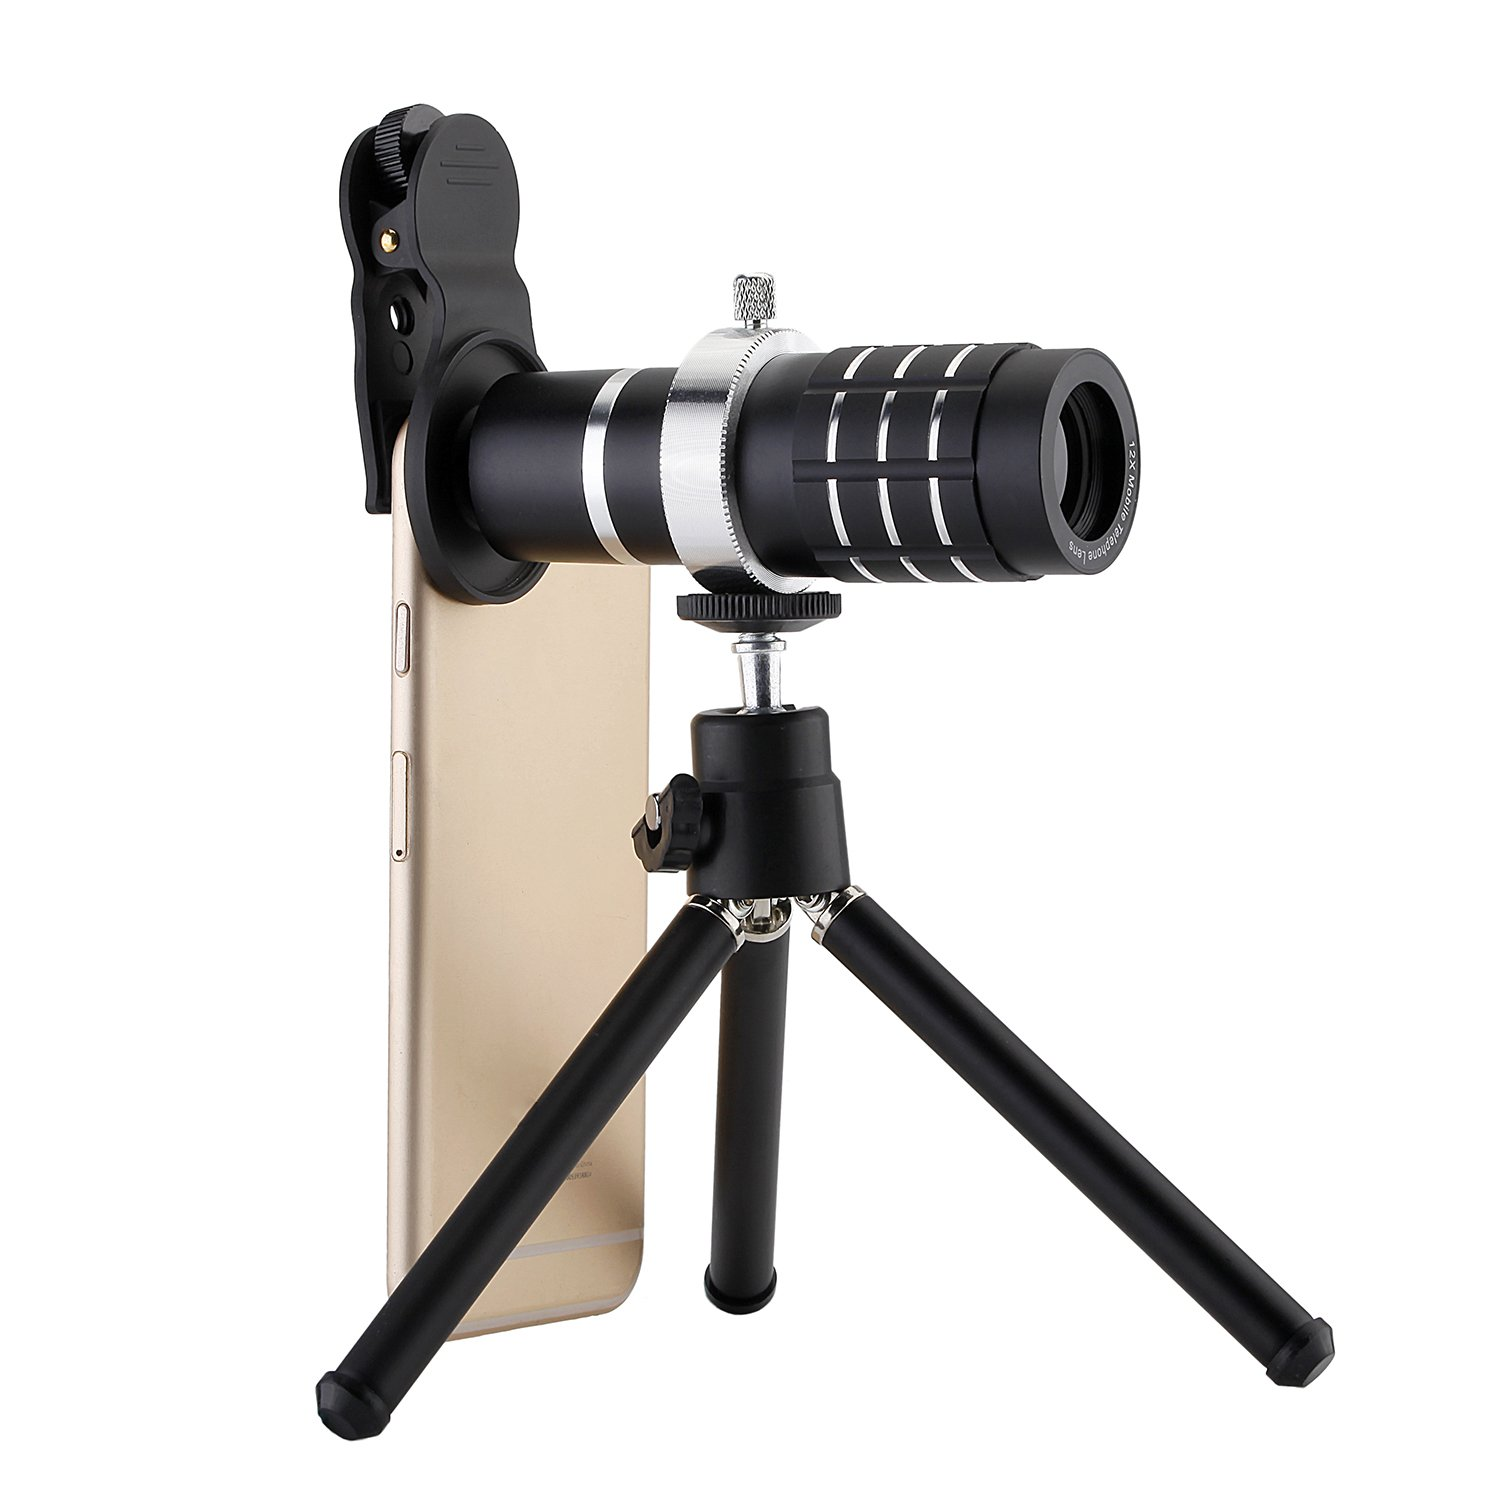 SODIAL Camera Lens Universal Clip-On Phone 12X Optical Zoom Telephoto Lens for iPhone Samsung Huawei Ipad Tablet PC Laptops(Black)